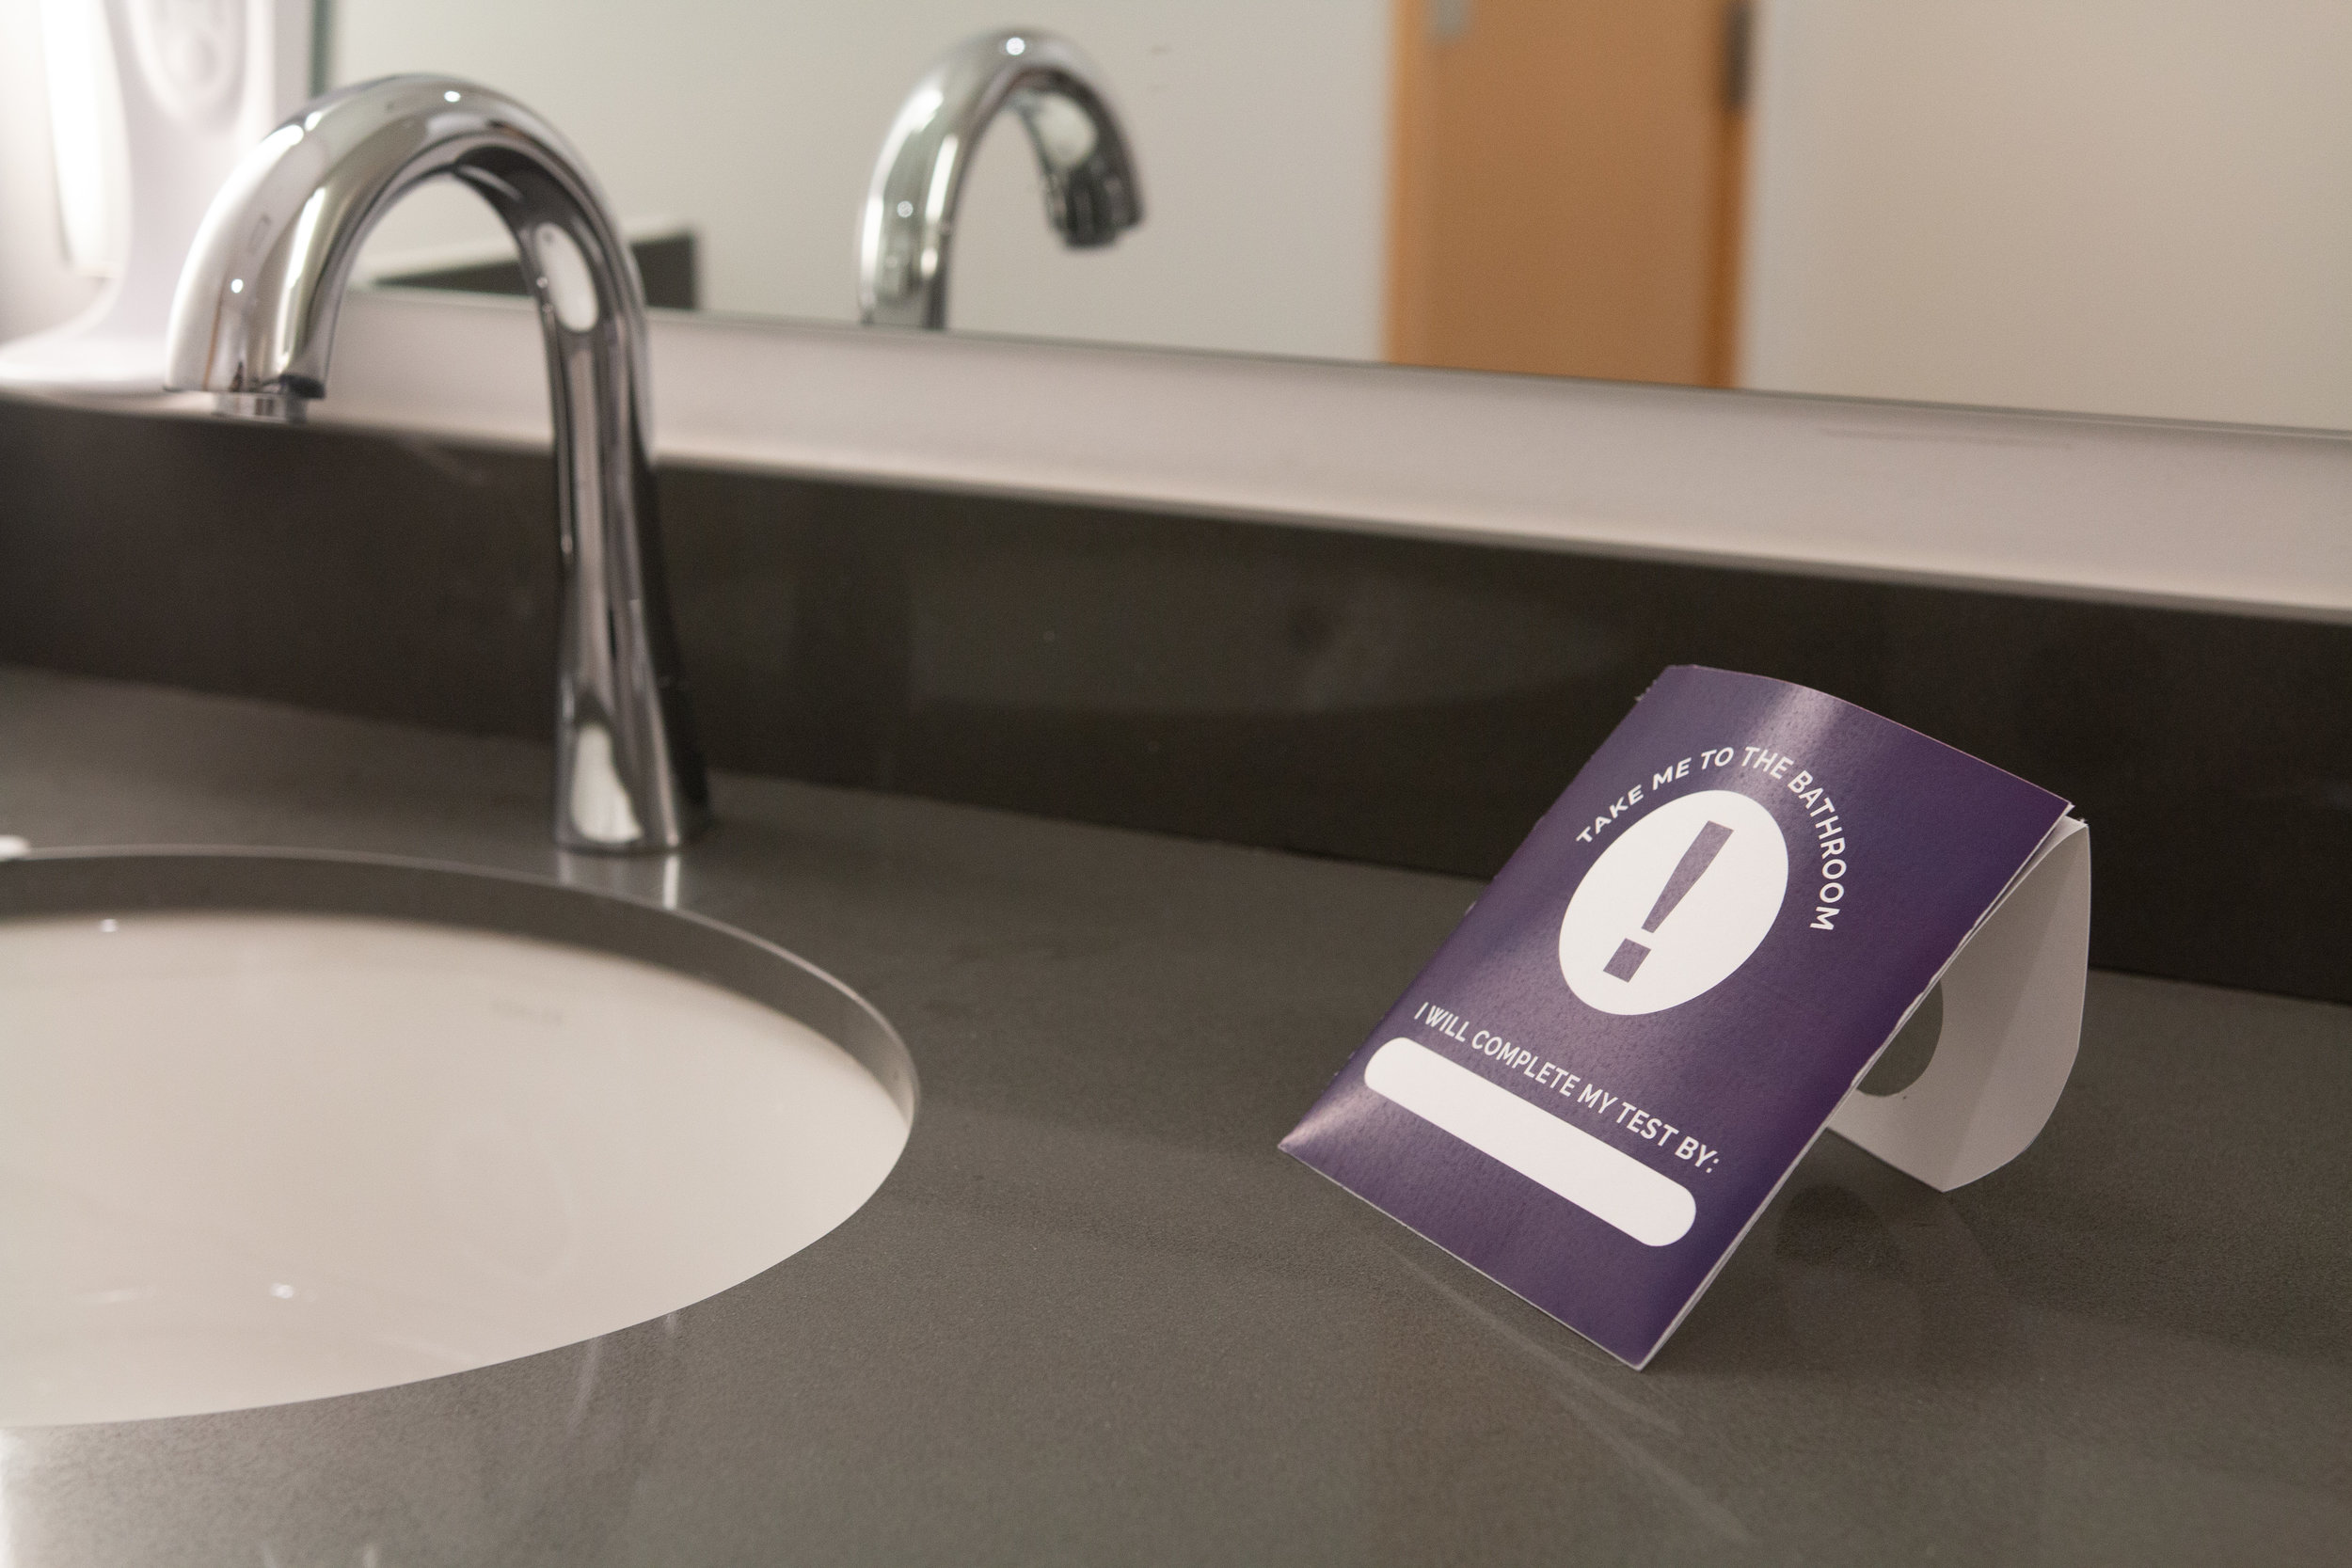 Hanger can sit on bathroom counter to nudge behavior to use